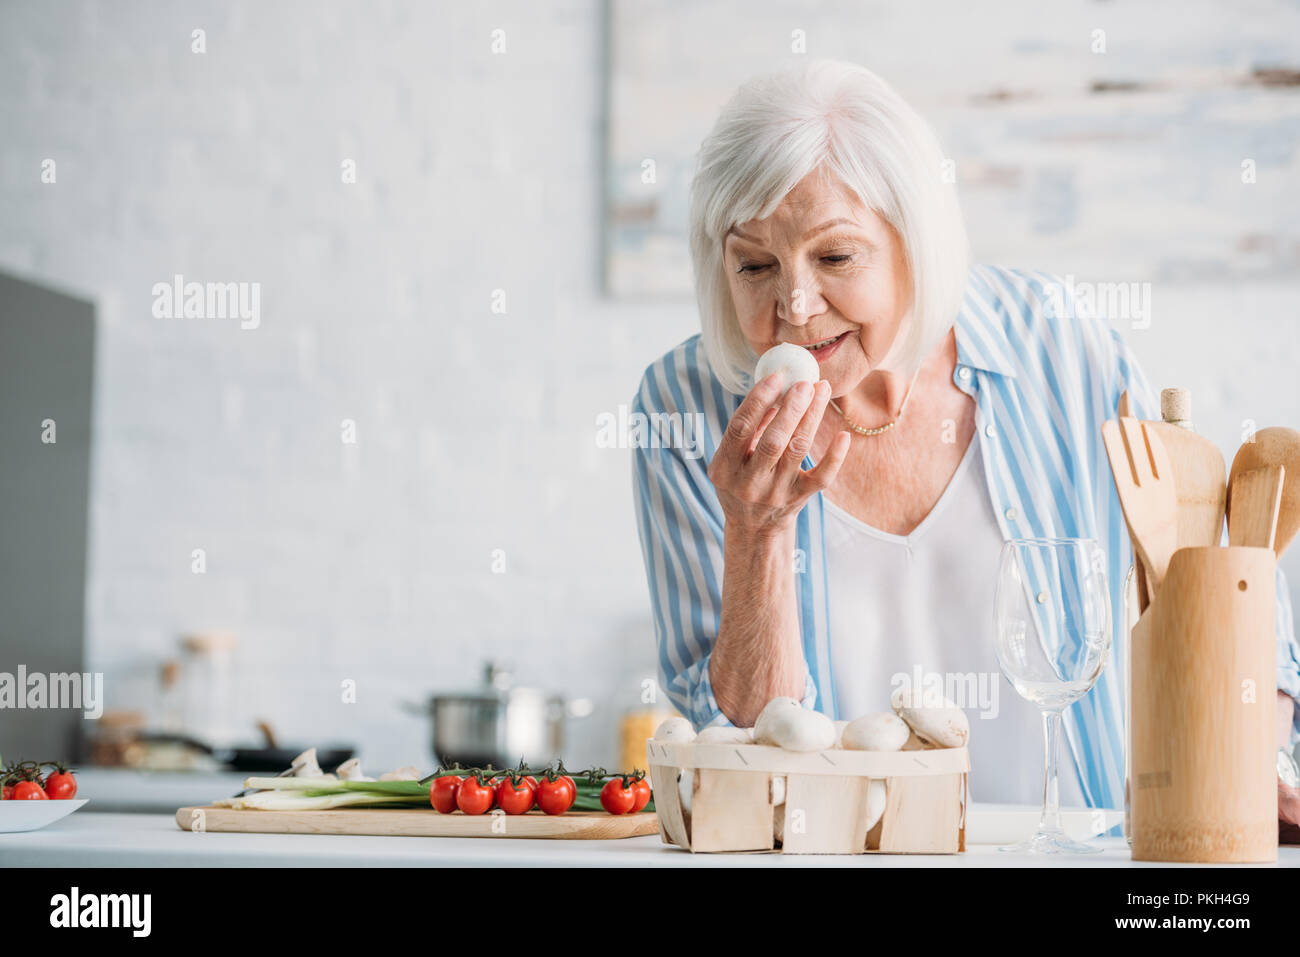 portrait of grey hair lady checking mushrooms while cooking dinner at counter in kitchen - Stock Image